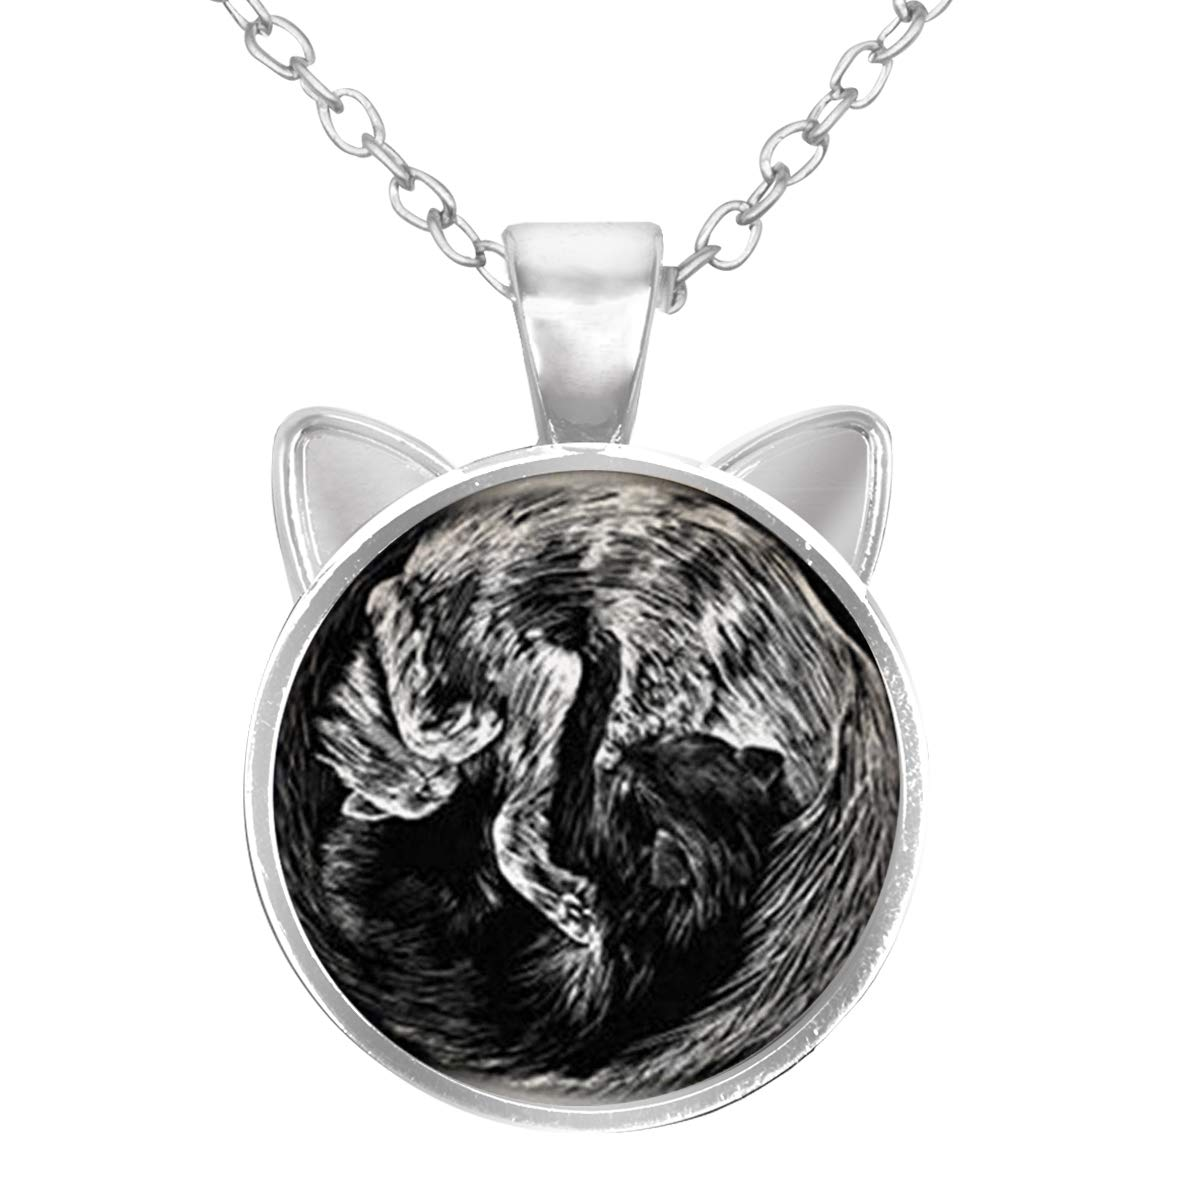 Black and Grey Cats LooPoP Cat Pendant Necklace Jewelry for Women Kids Gifts Included Free Charm Chain